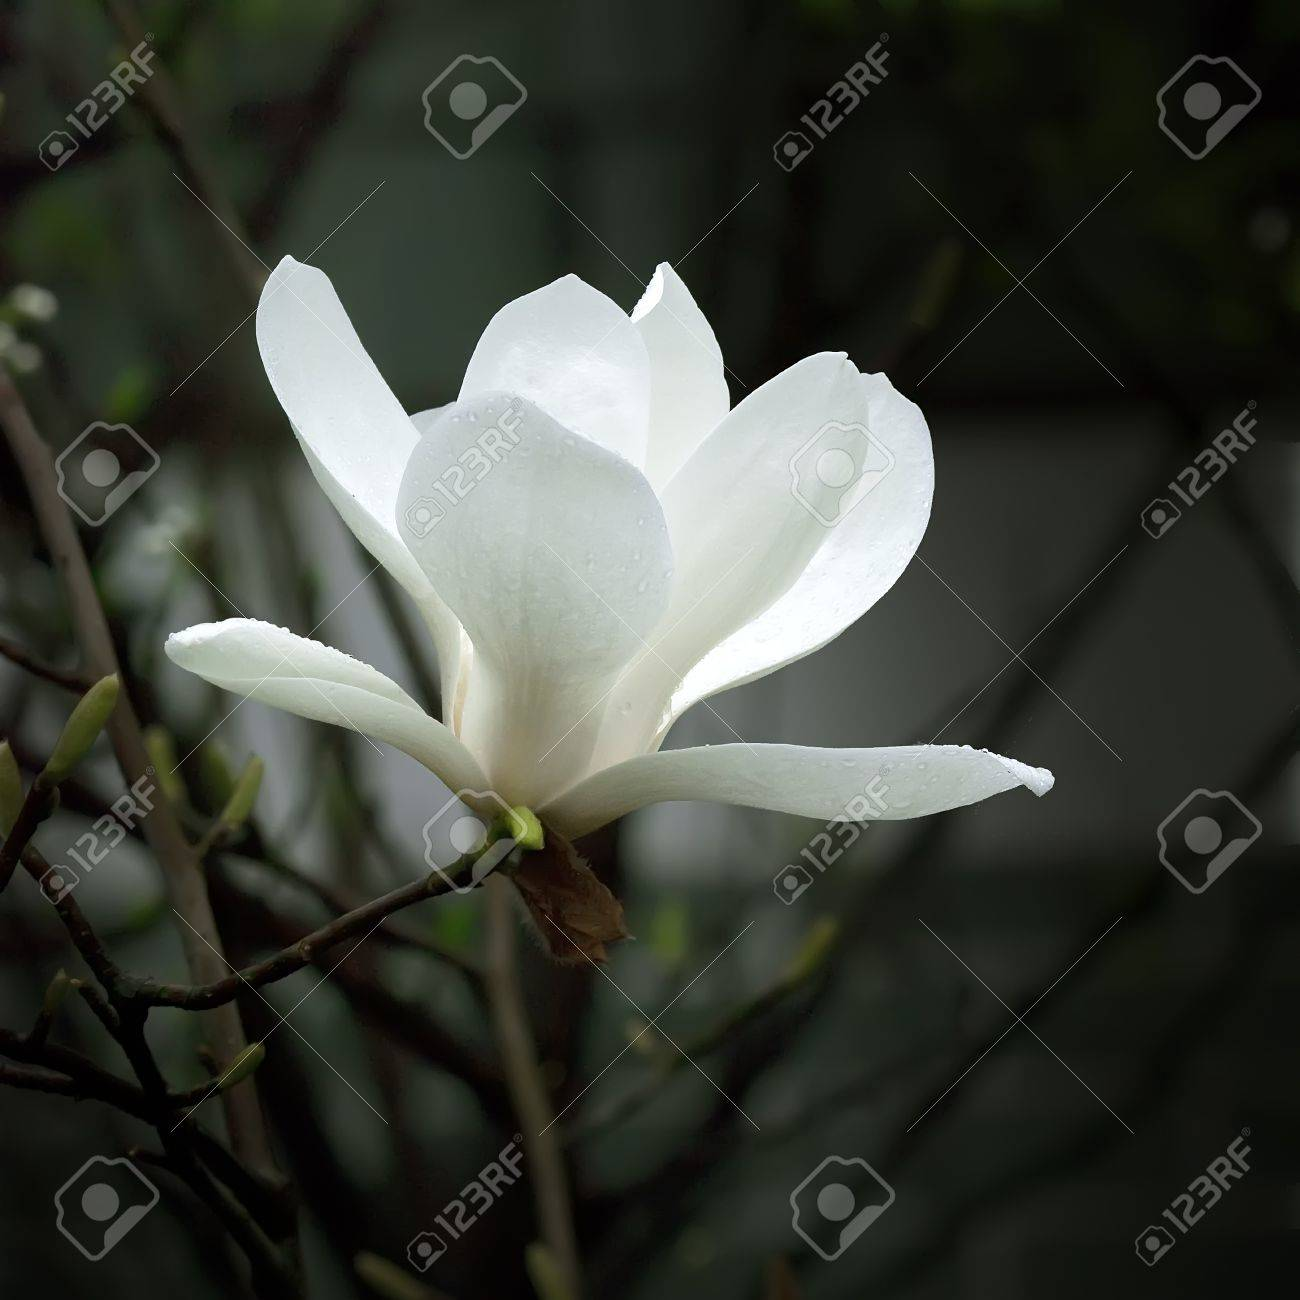 A beautiful white magnolia flower with fresh odor stock photo a beautiful white magnolia flower with fresh odor stock photo 8470920 mightylinksfo